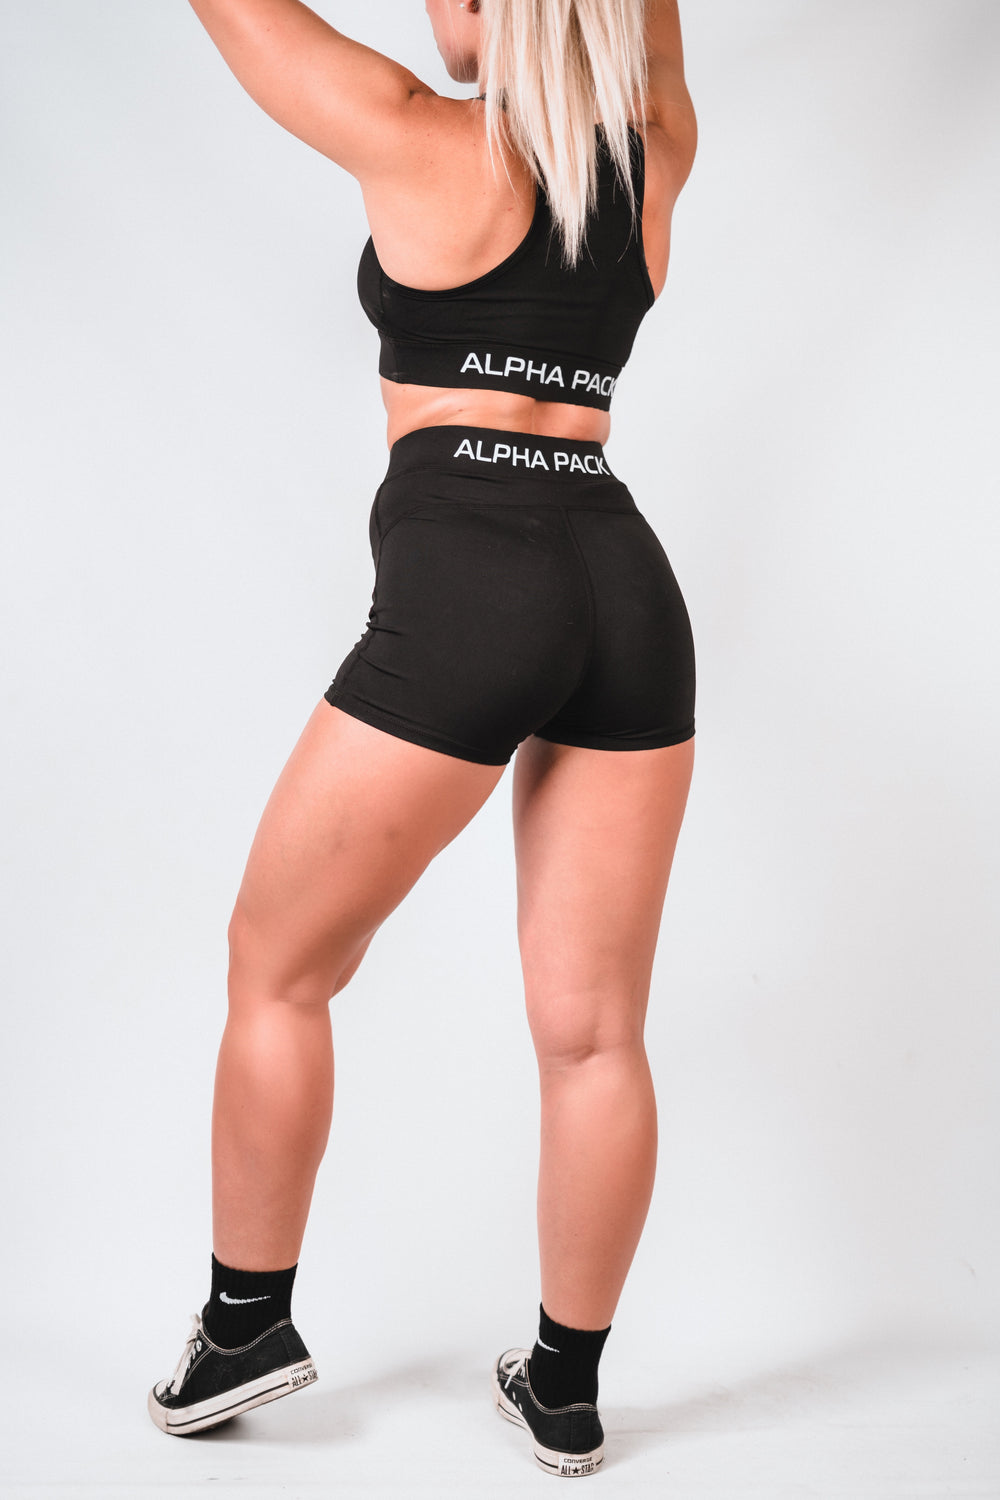 AP Statement Short - Black